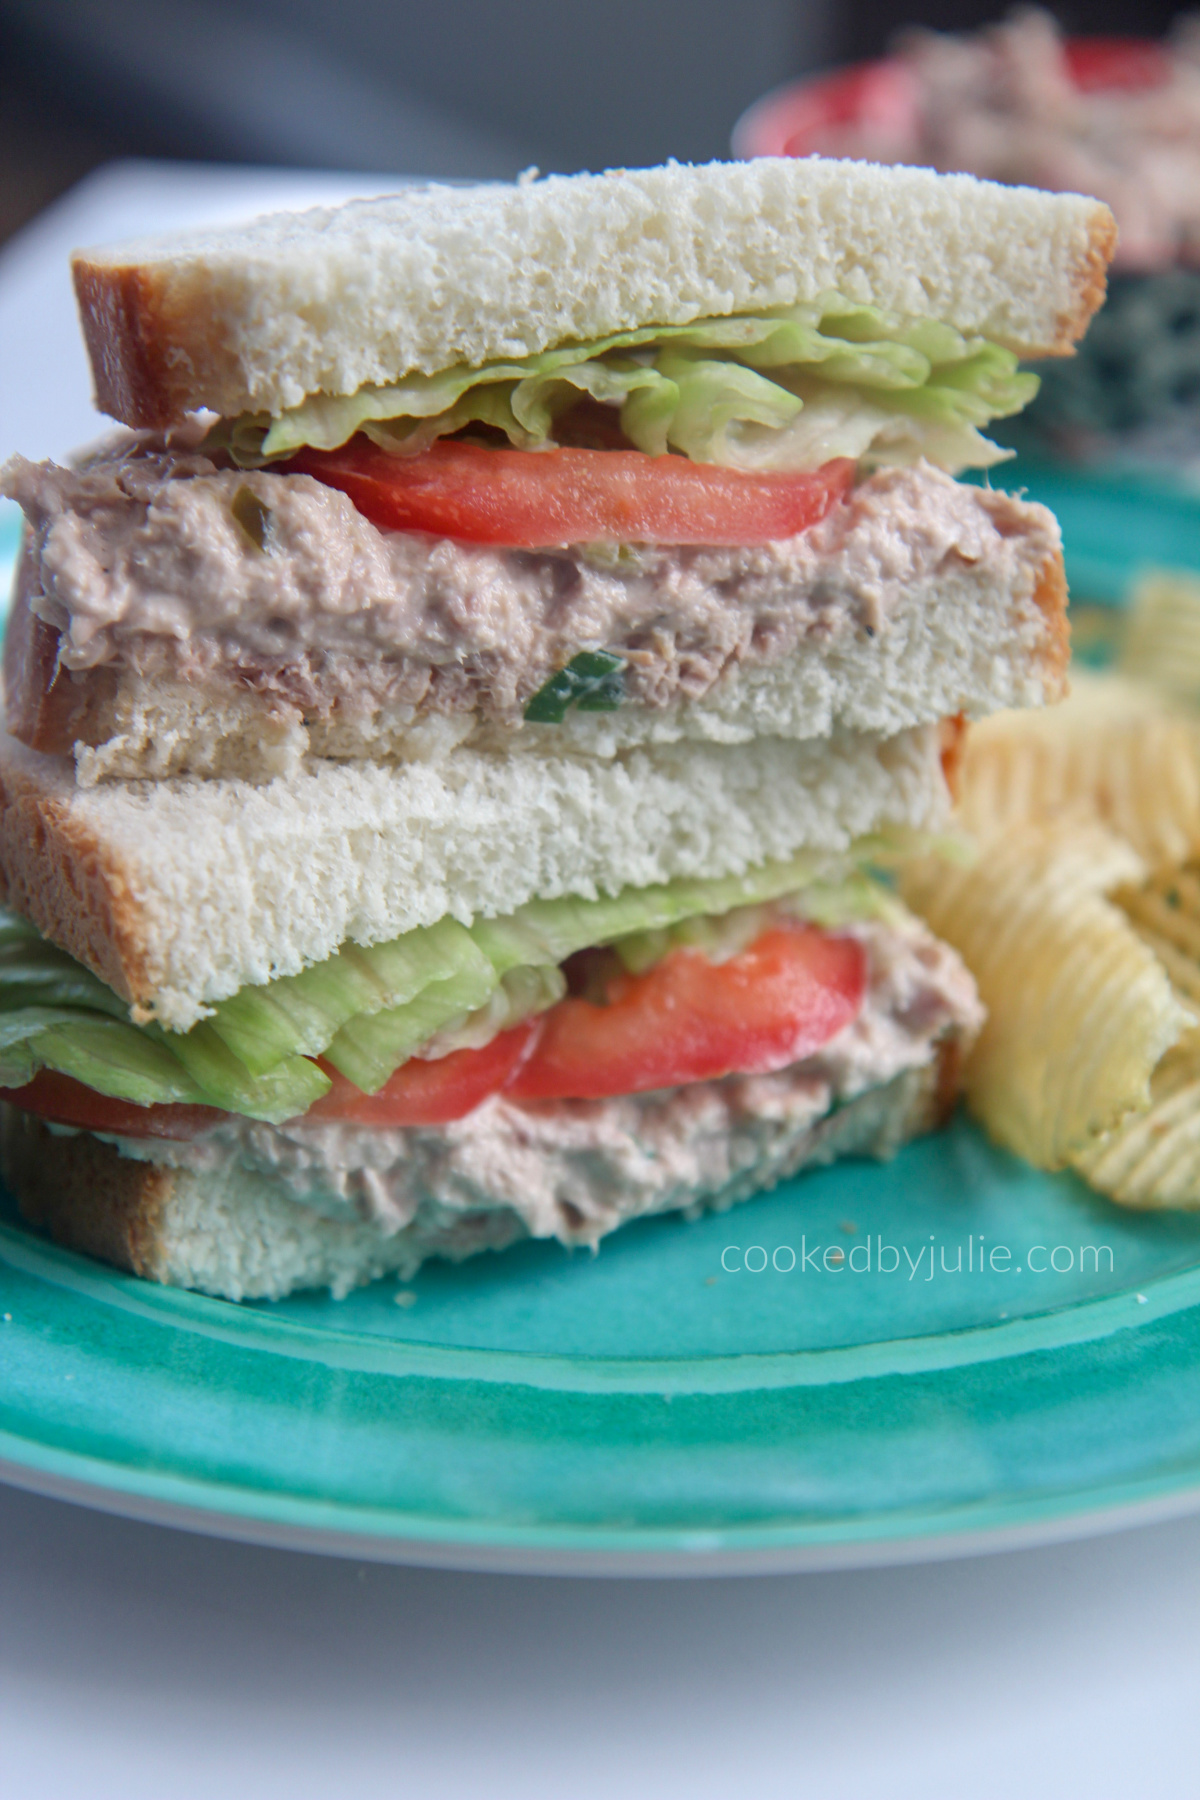 Easy Tuna Salad Sandwich Video Cooked By Julie